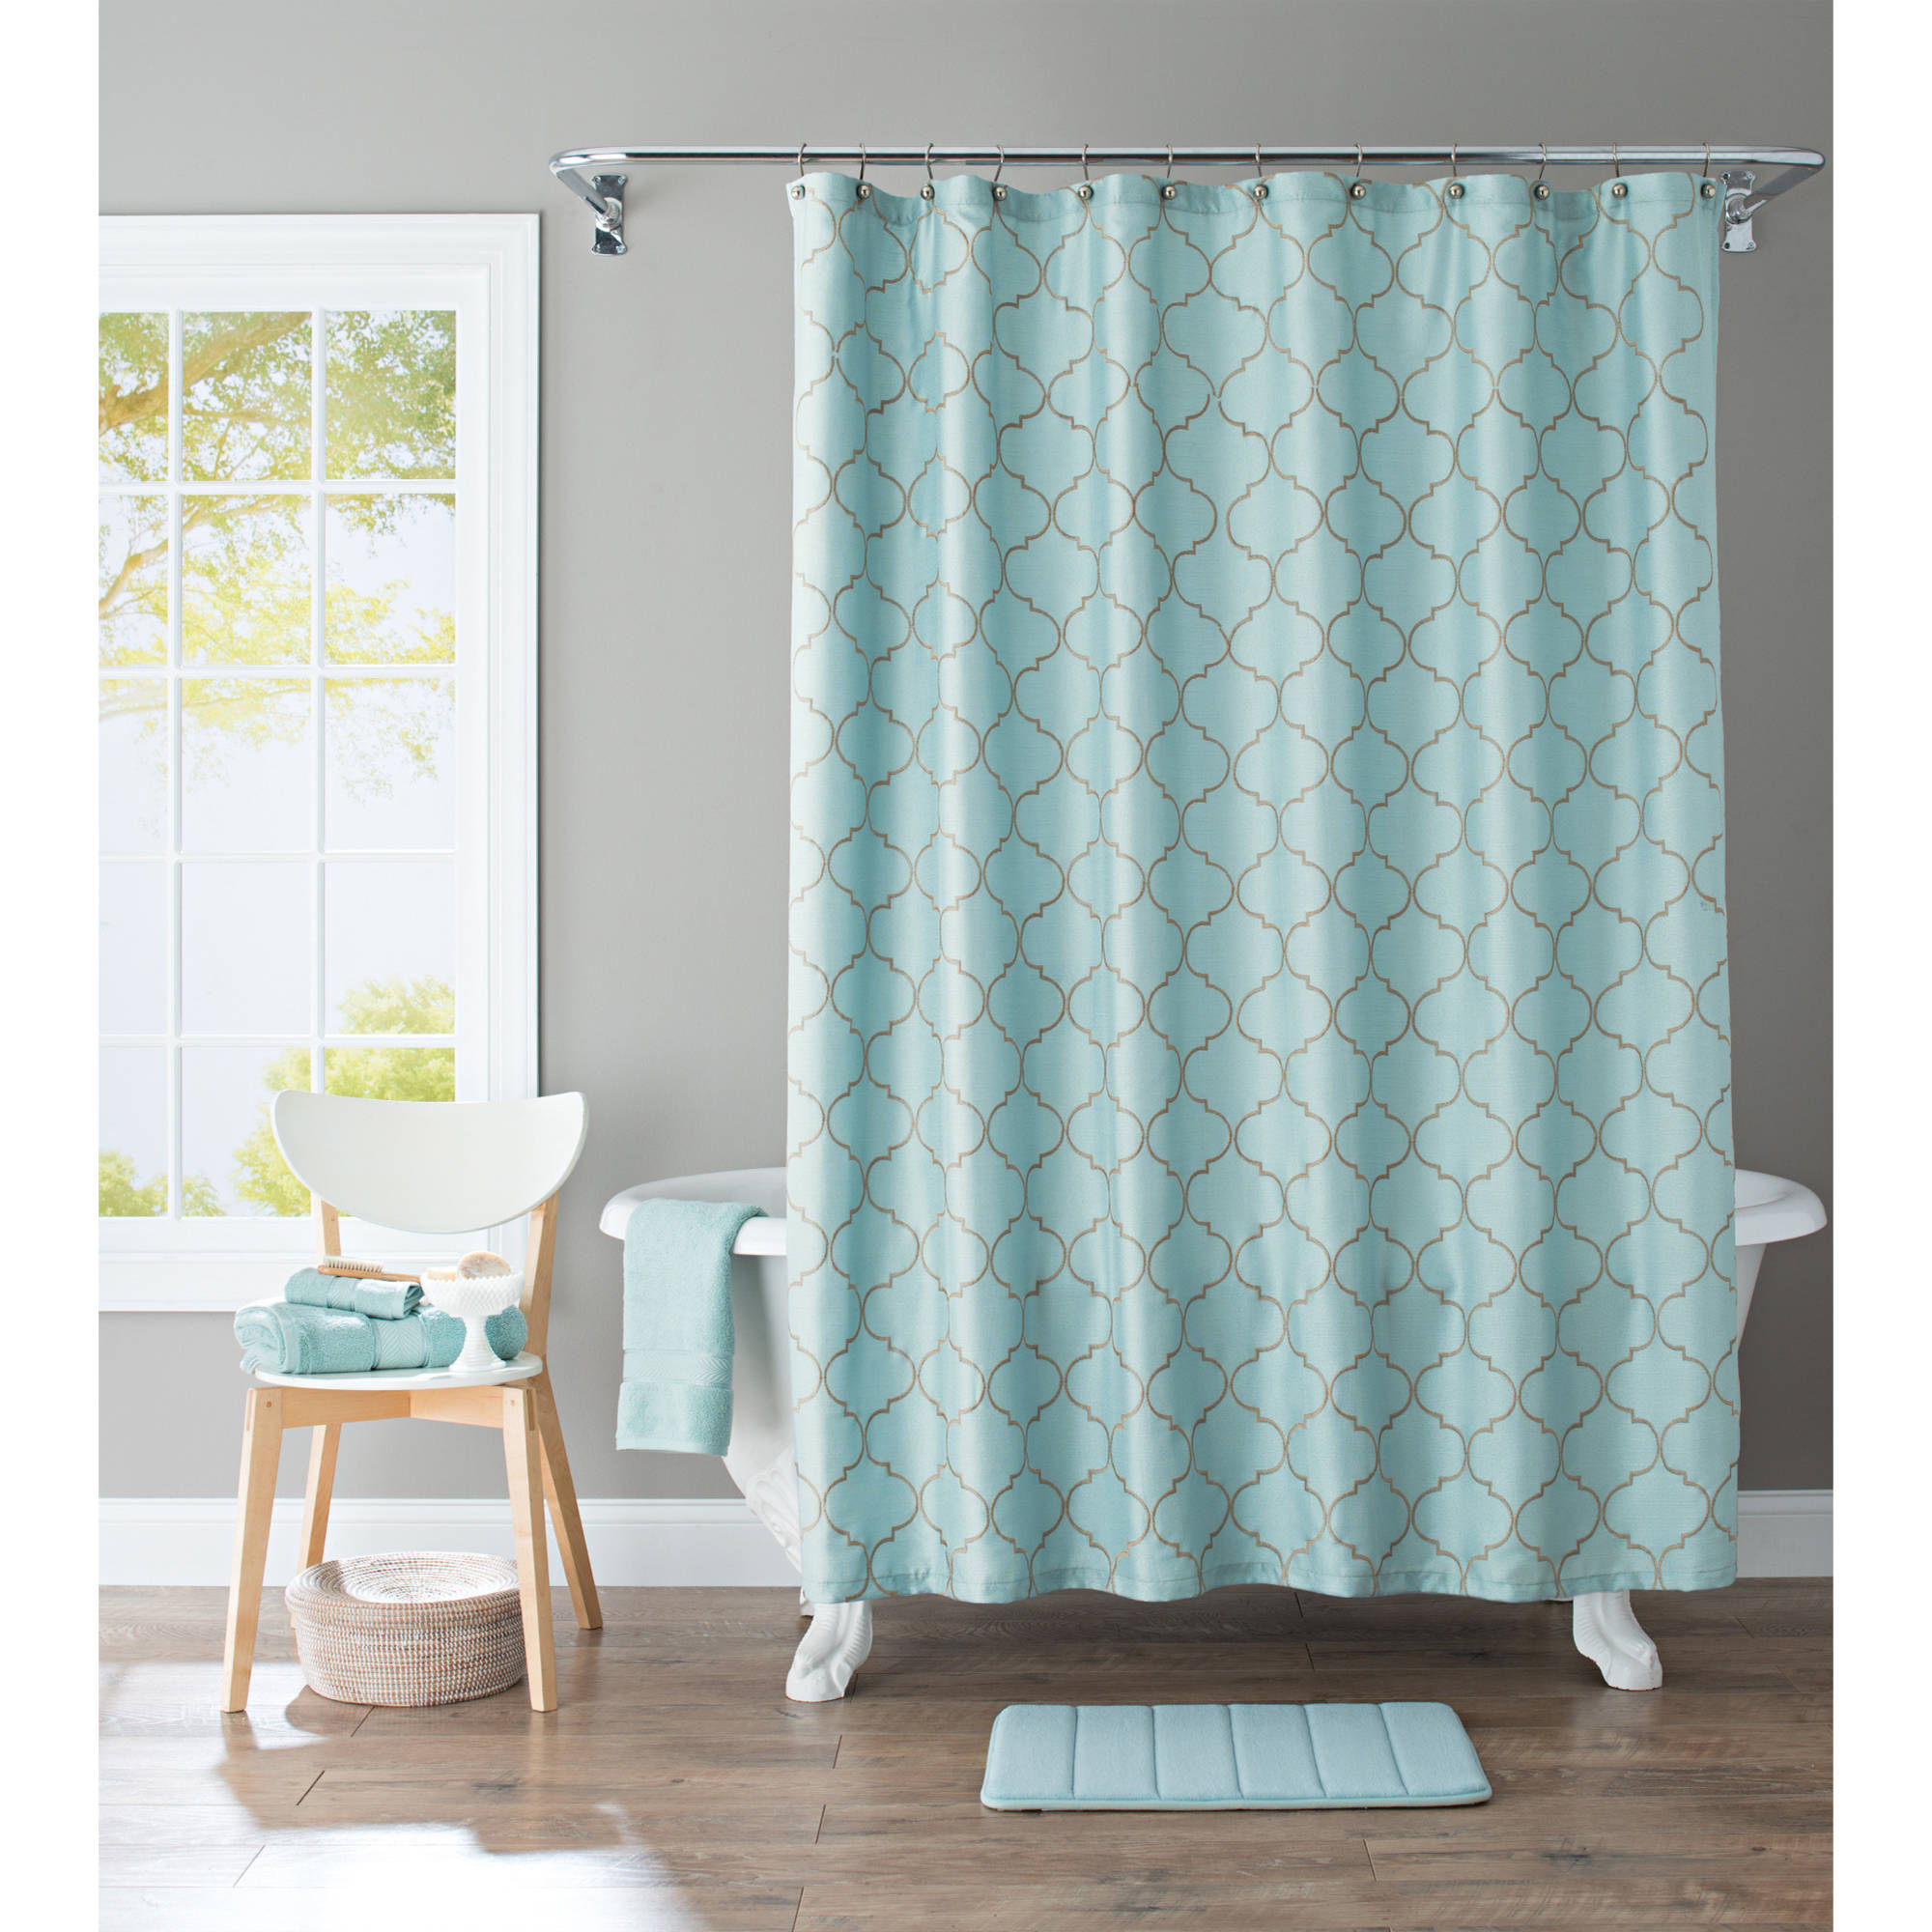 Better Homes And Gardens Scalloped Trellis Embroidered Fabric Shower Curtain